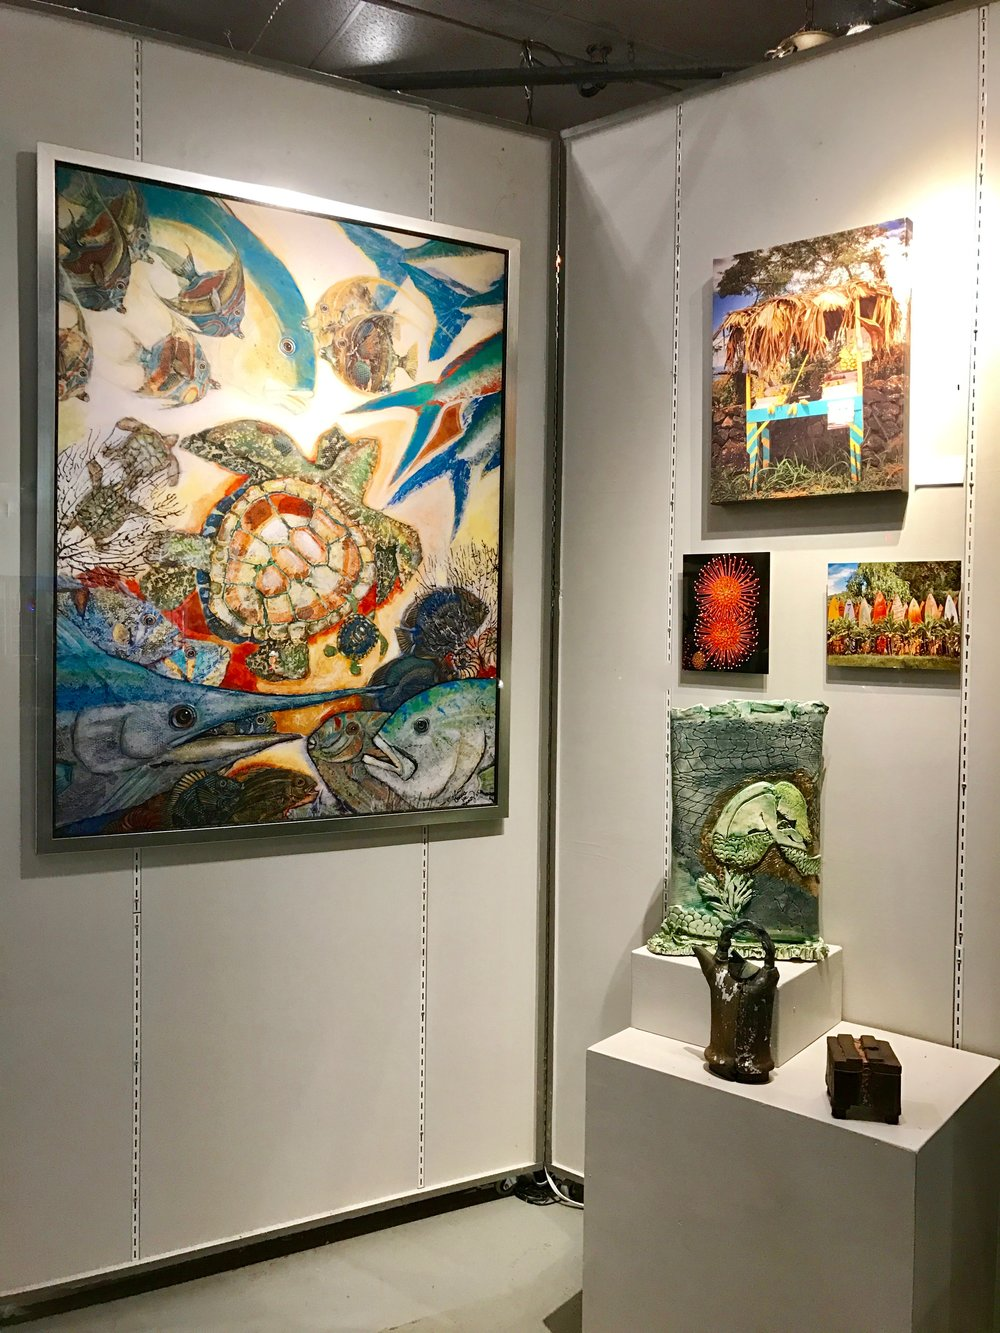 On the left wildly acclaimed artist Carrie Brady,  and on the left Co op member STeven Levin, and Famous Ceramist Arabella Ark from Hana, also one of our members.